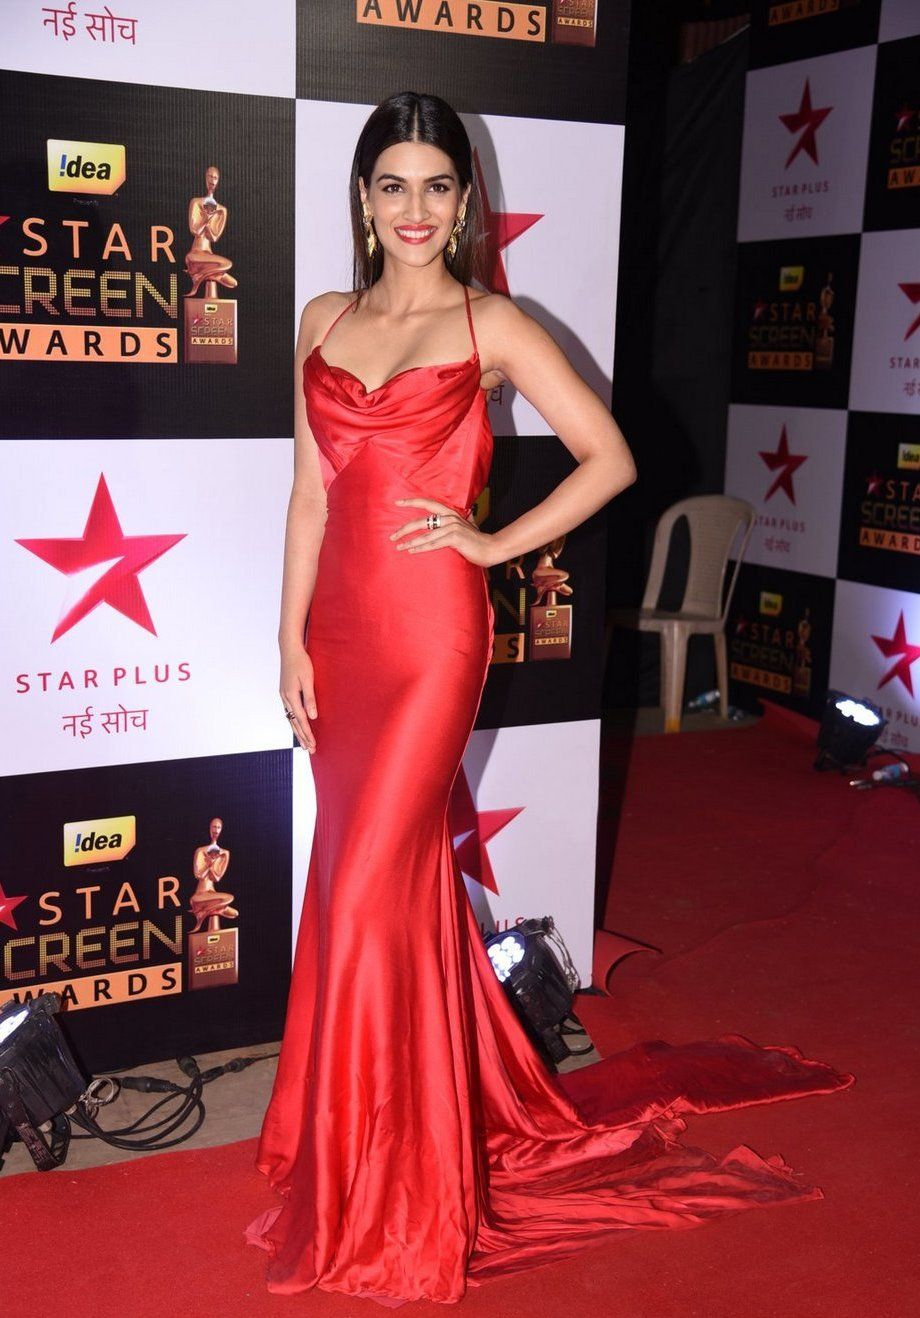 Bollywood Actresses Who Is The Tallest Of Them All N4m Survey Red Dress Dresses Celebrity Dresses